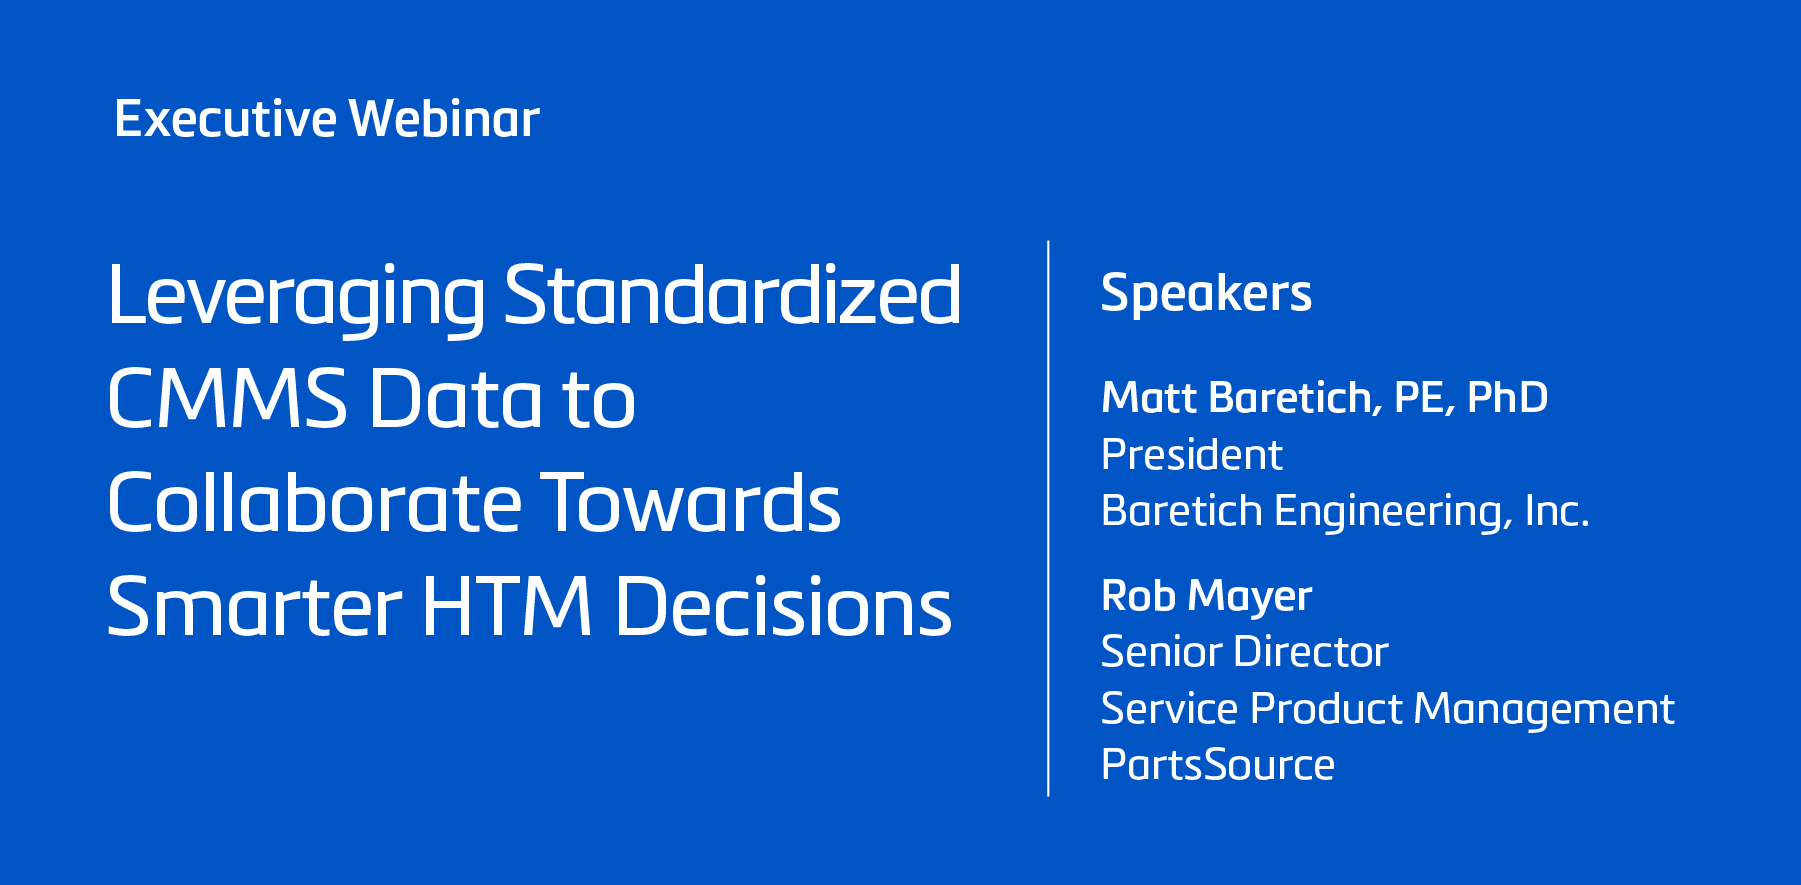 Leveraging Standardized CMMS  Data to Collaborate Towards Smarter HTM Decisions